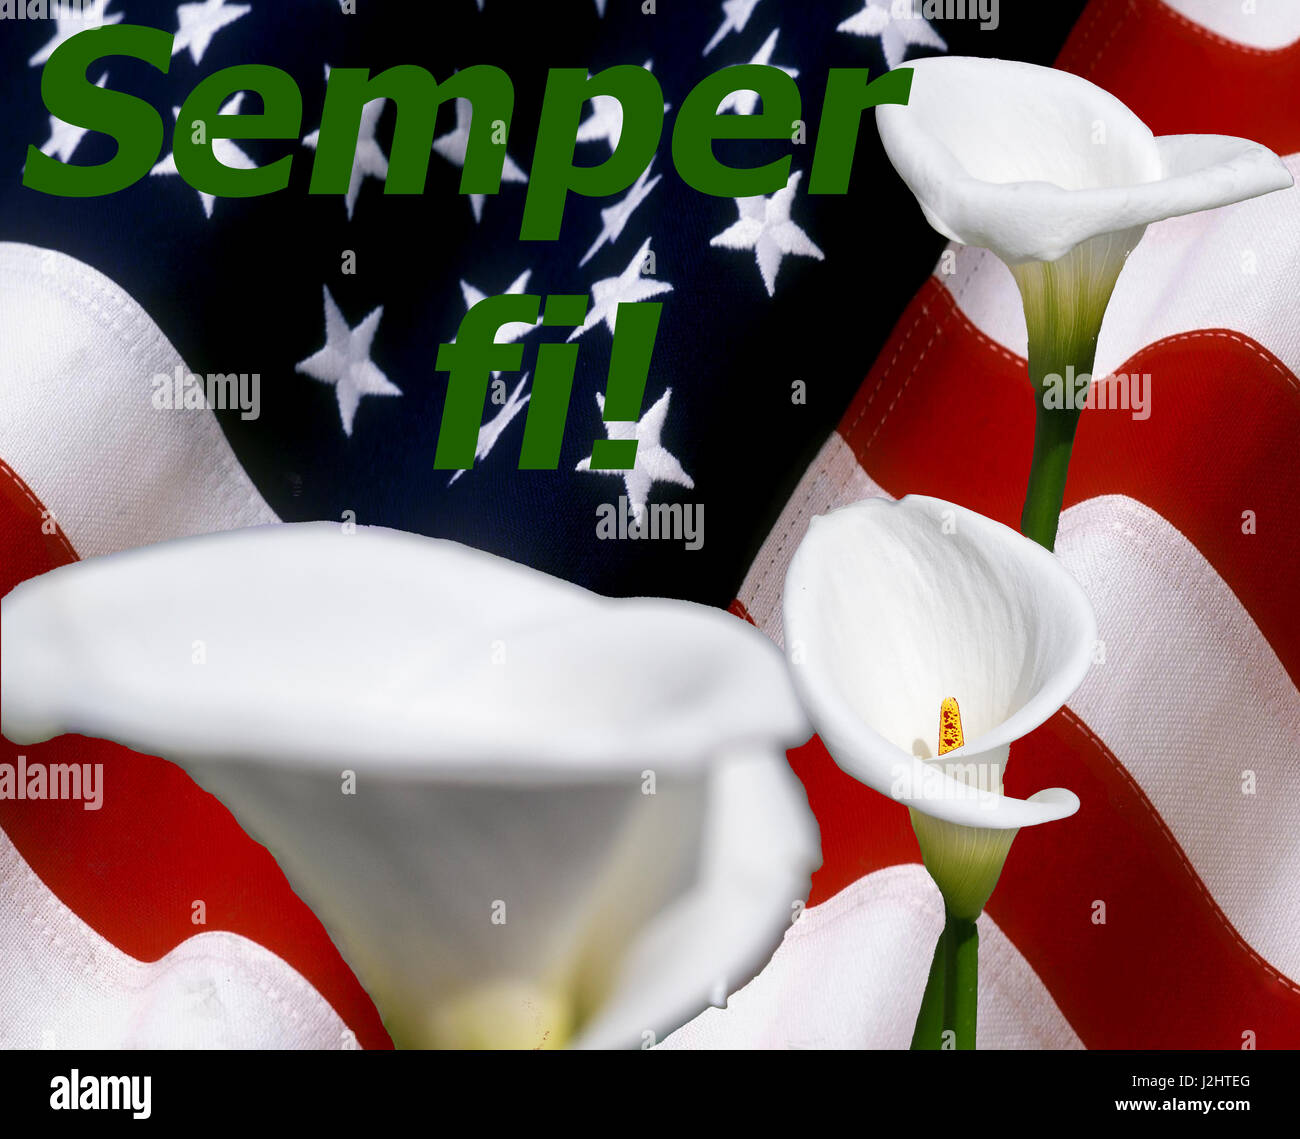 Semper Fi! with callalily flowers Stock Photo